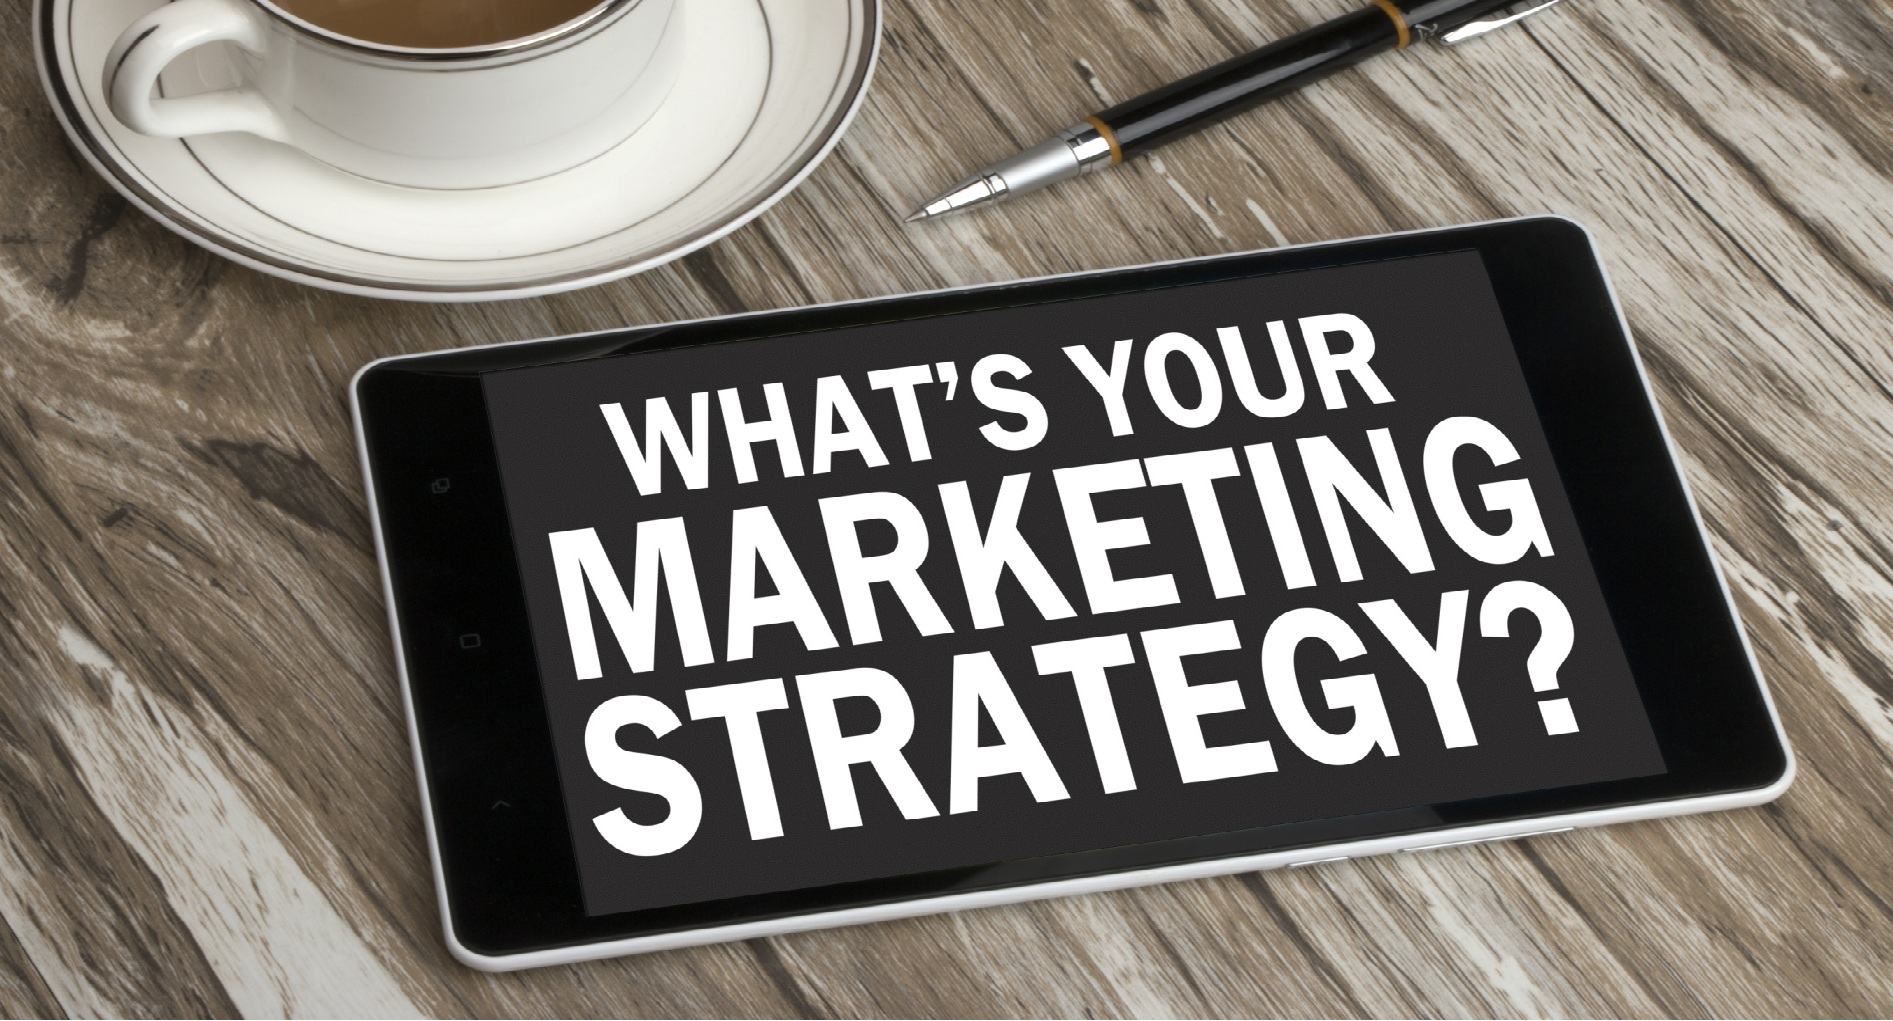 Jimmy Crangle Franchise Specialized of Marketing Consulting